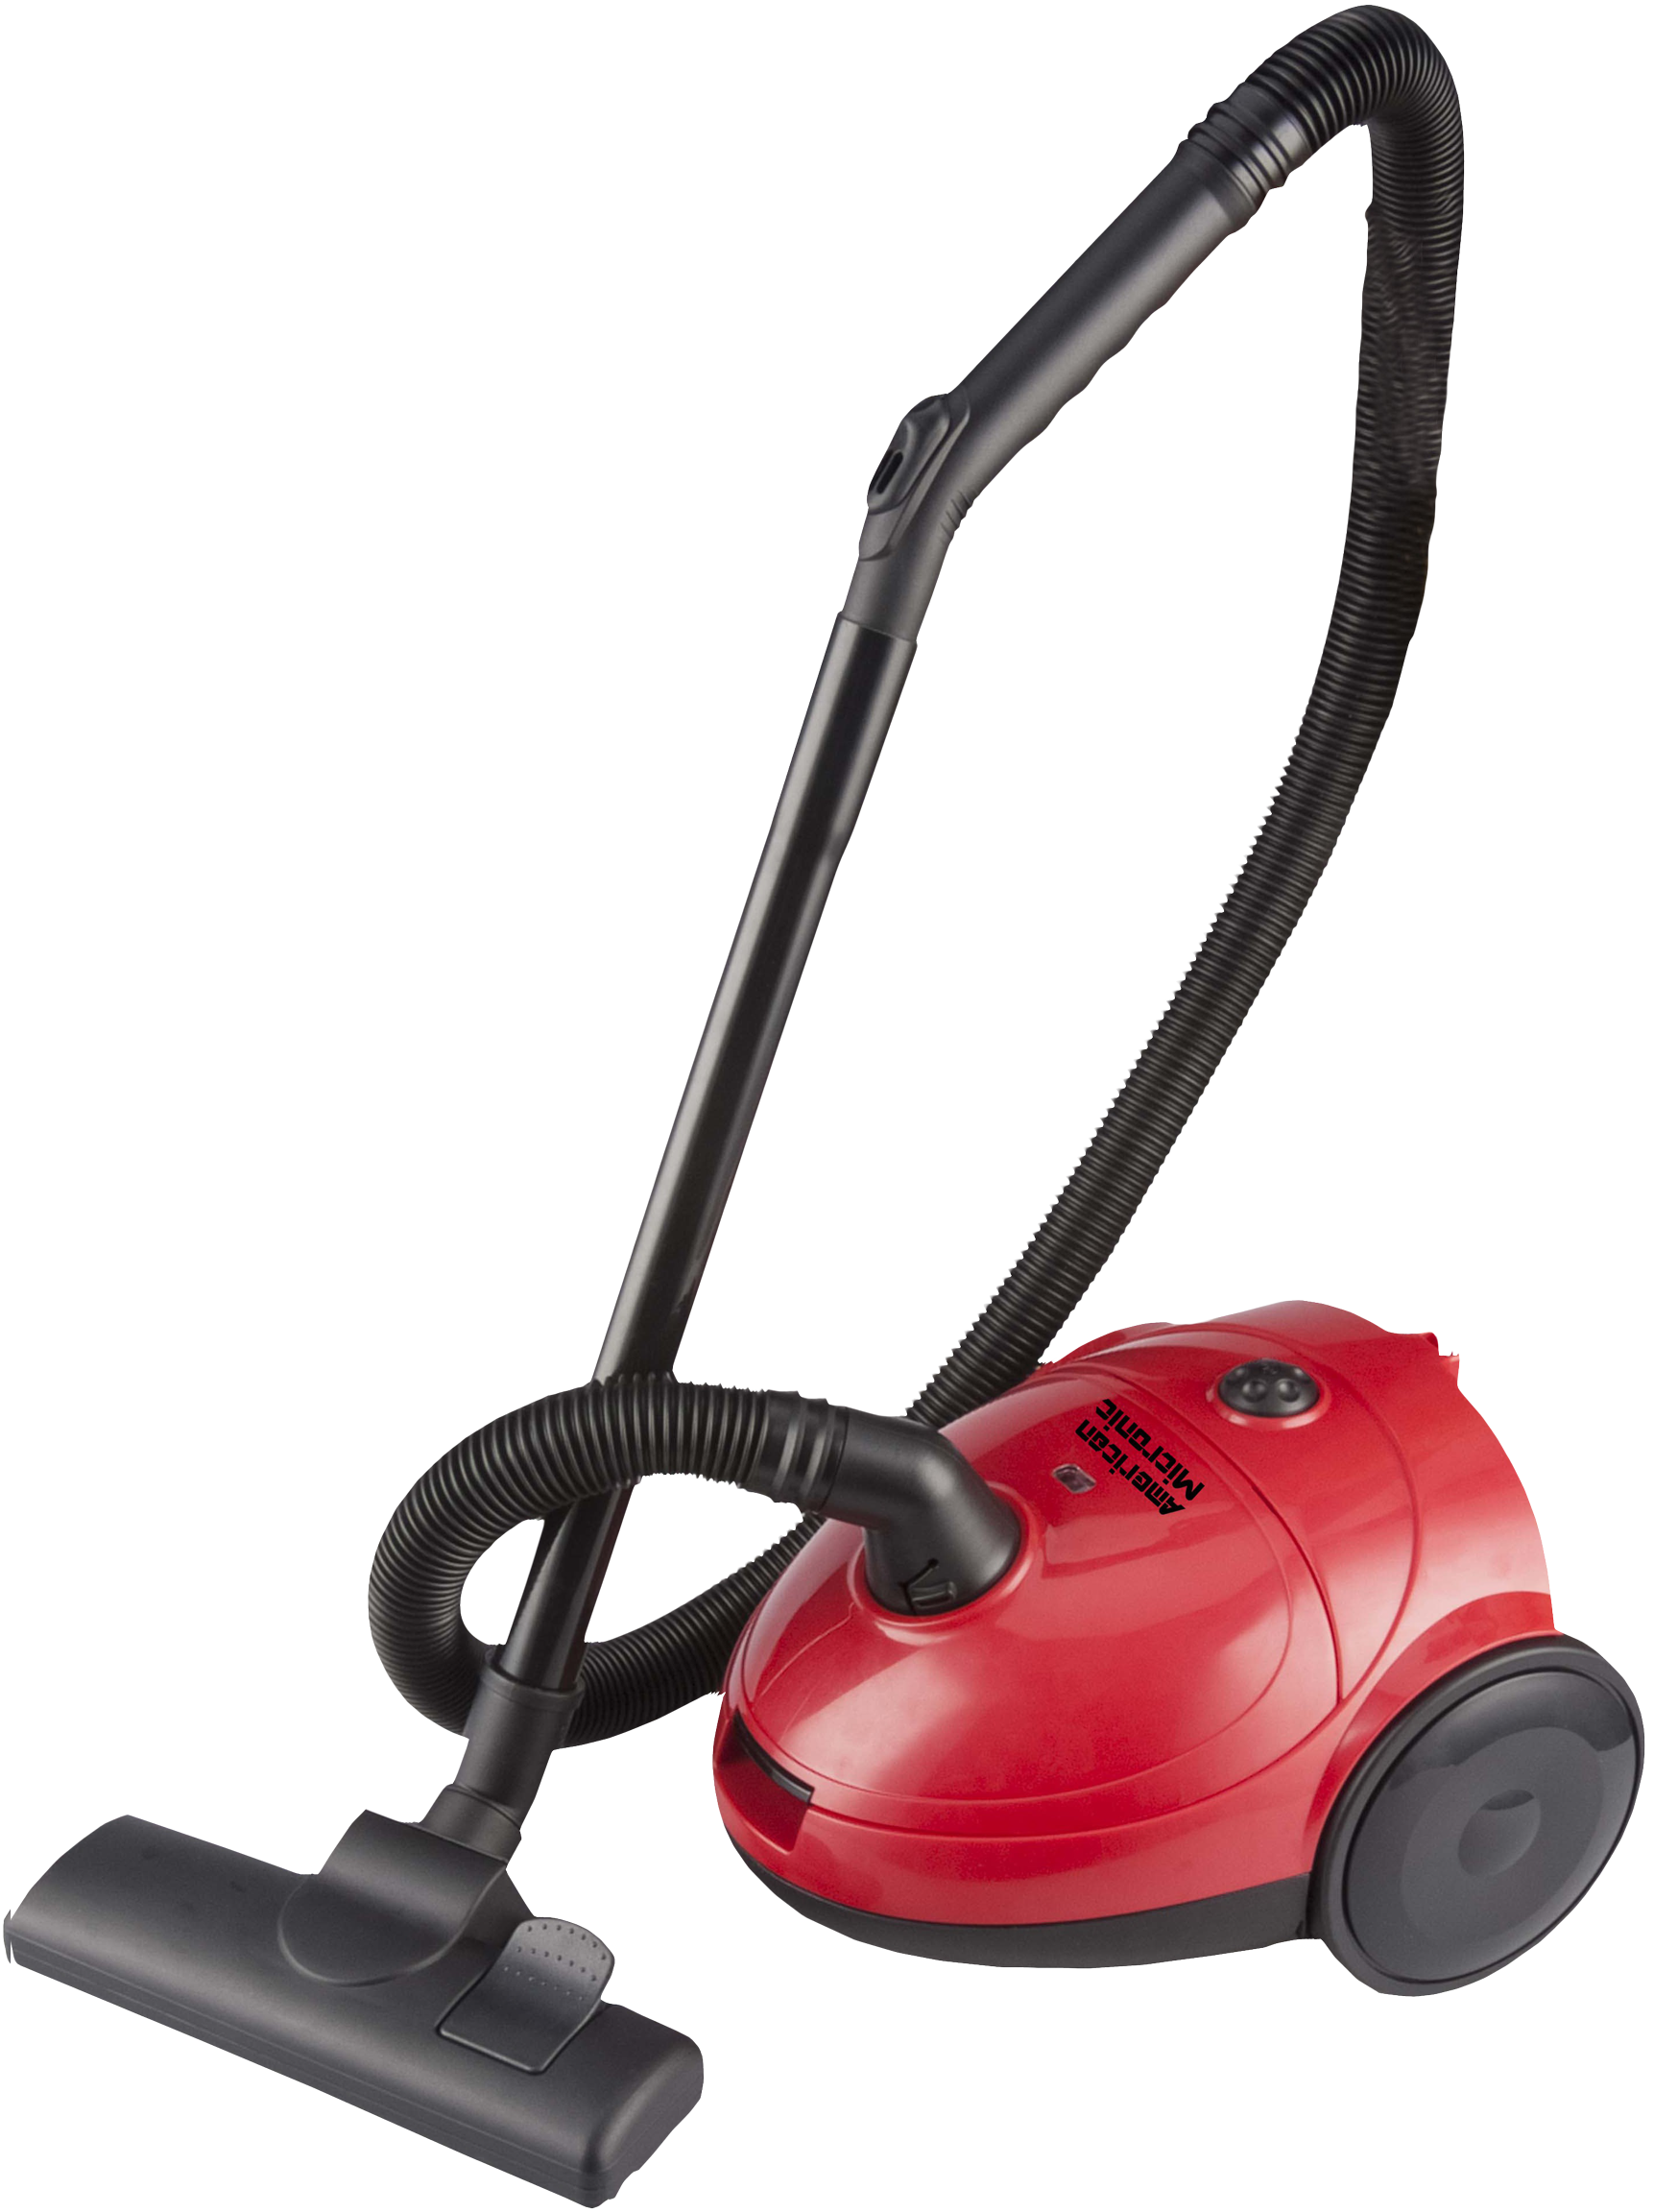 Vacuum Cleaner PNG Free Download.